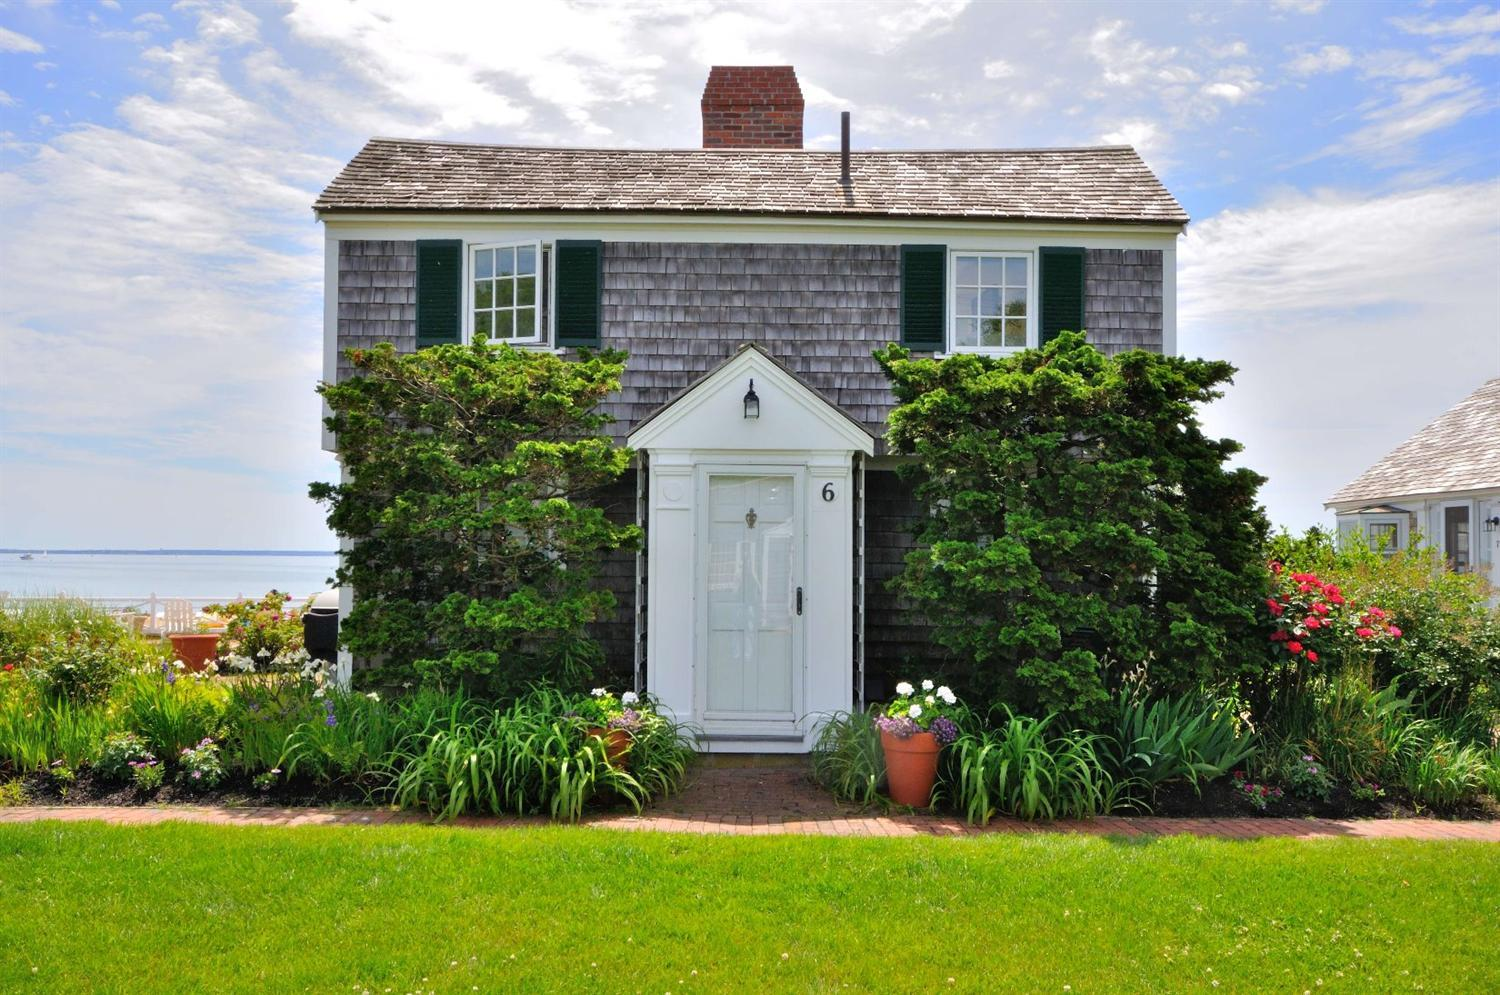 on get mls new see pin house cottages browse research and provincetown sale ma trulia zillow commercial open homes properties in neighborhoods for st info photos